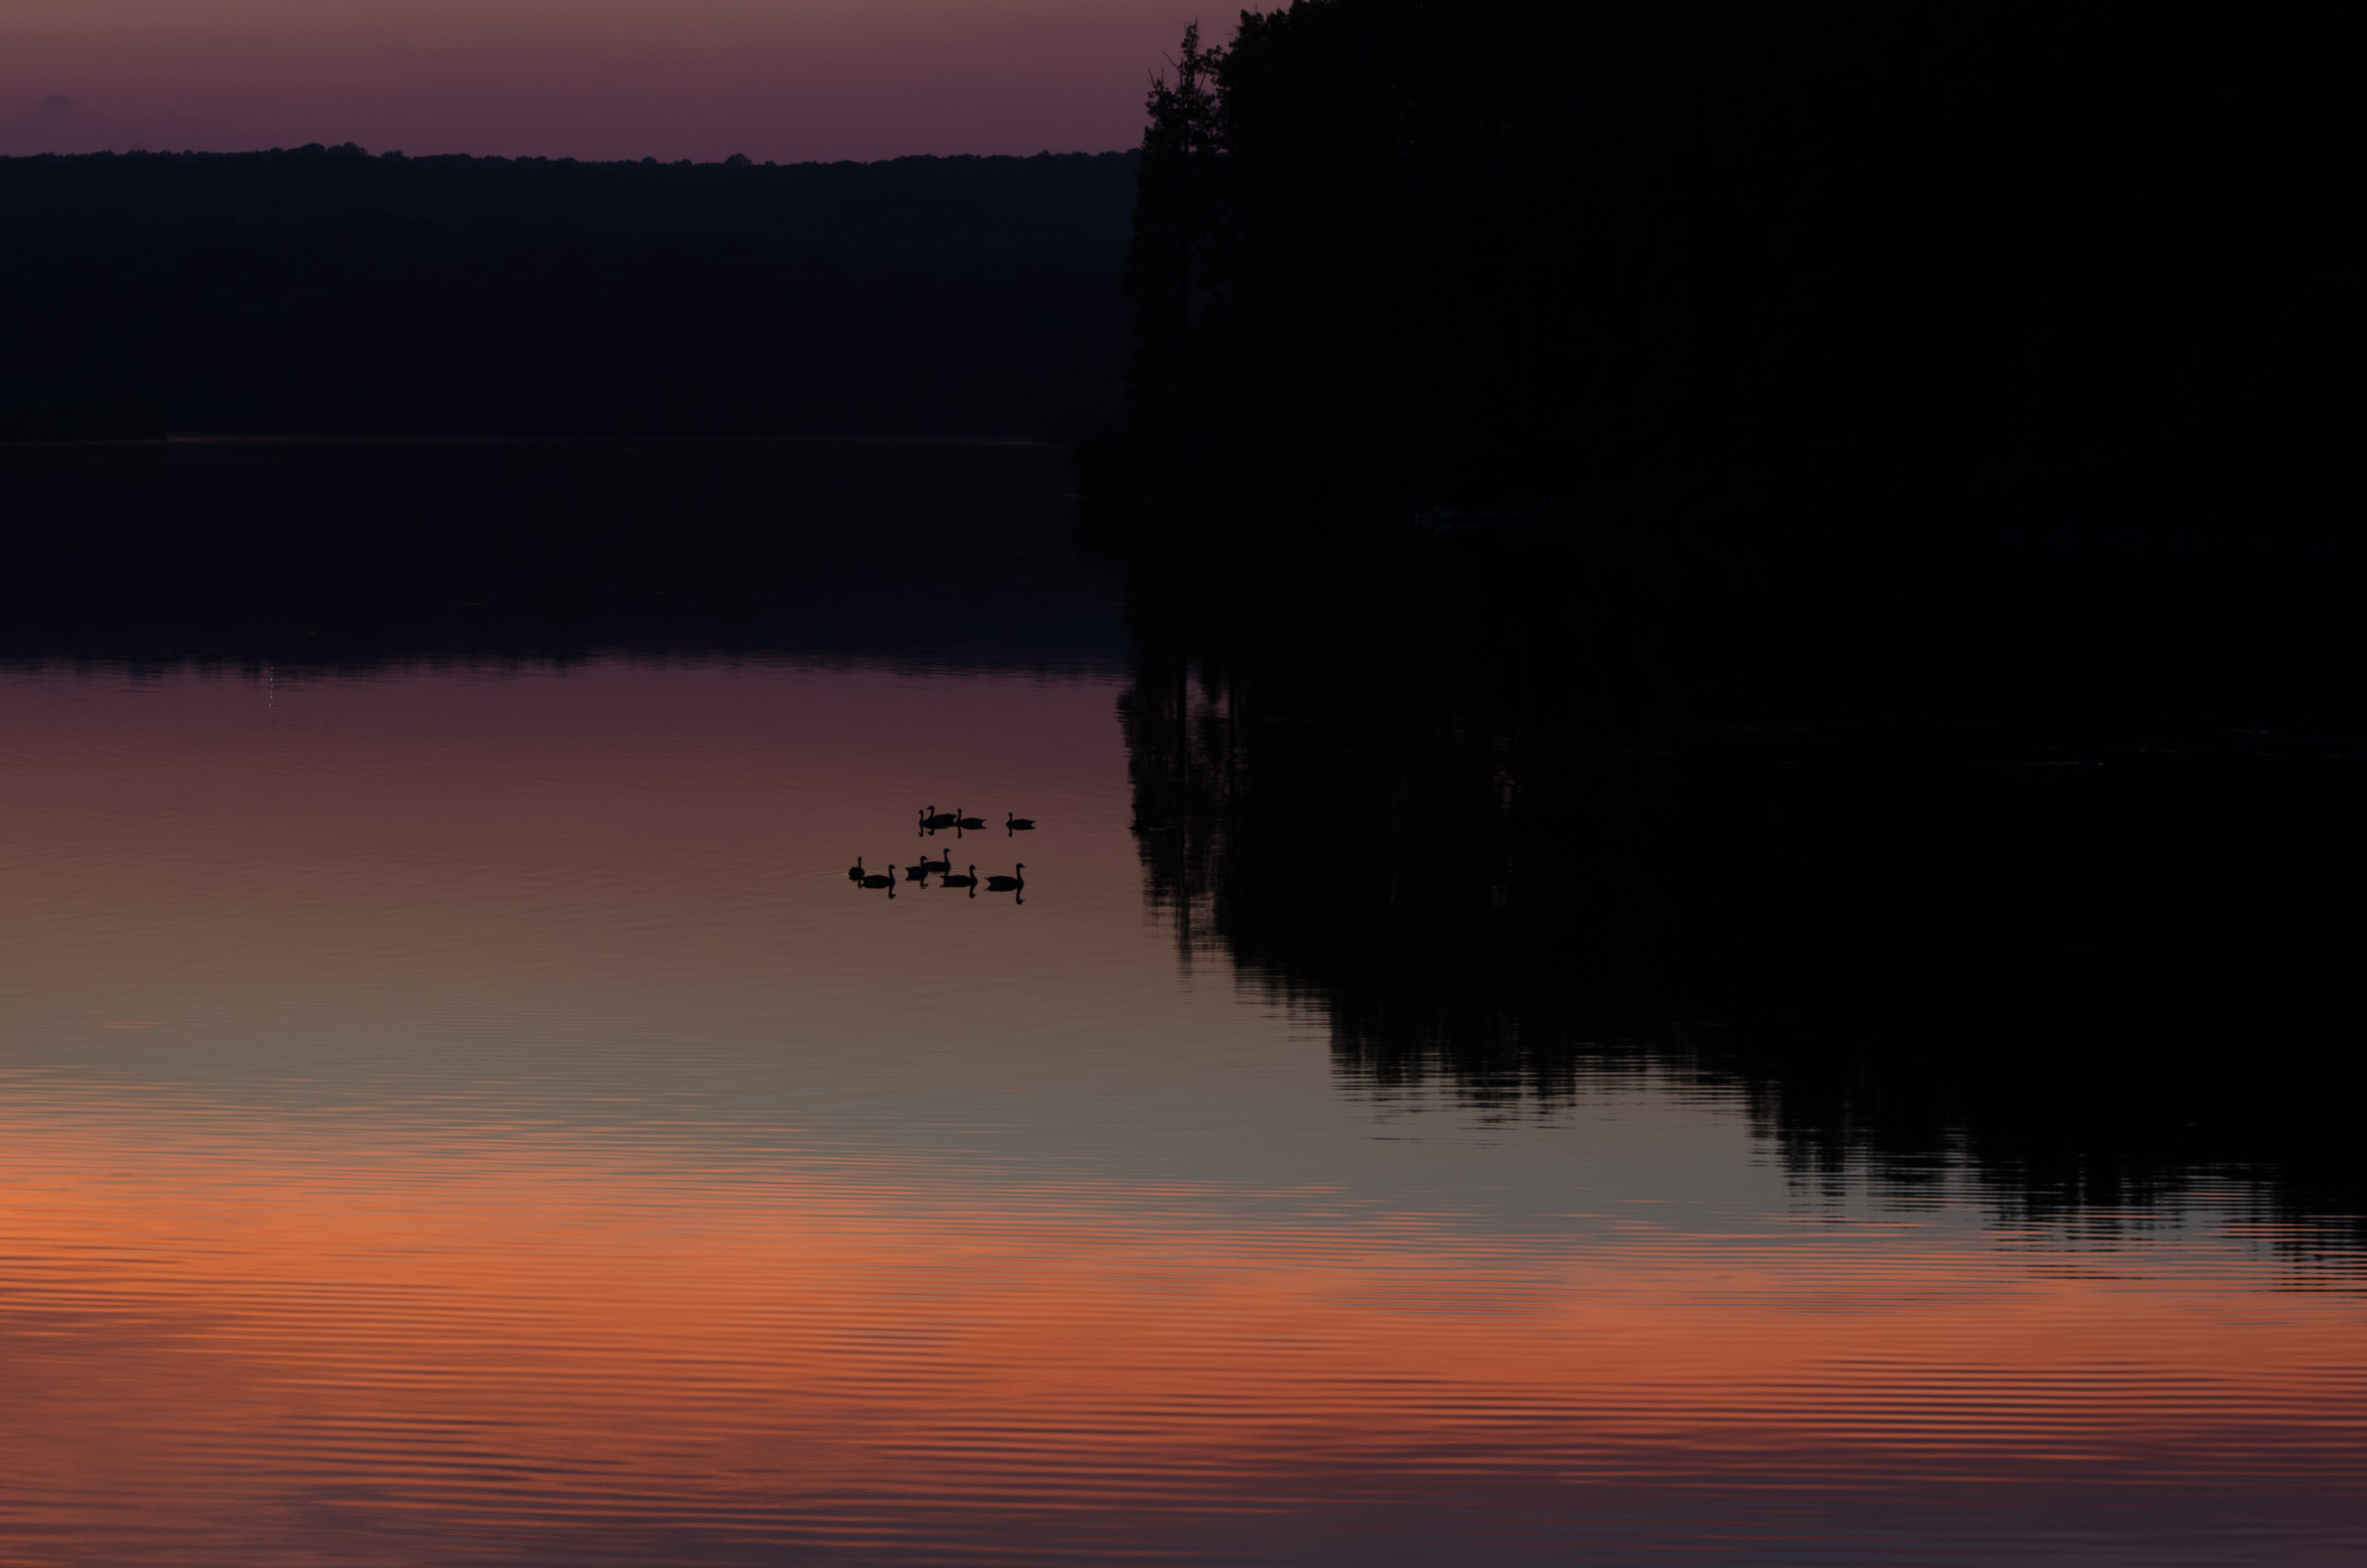 Silhouetted ducks at sunset